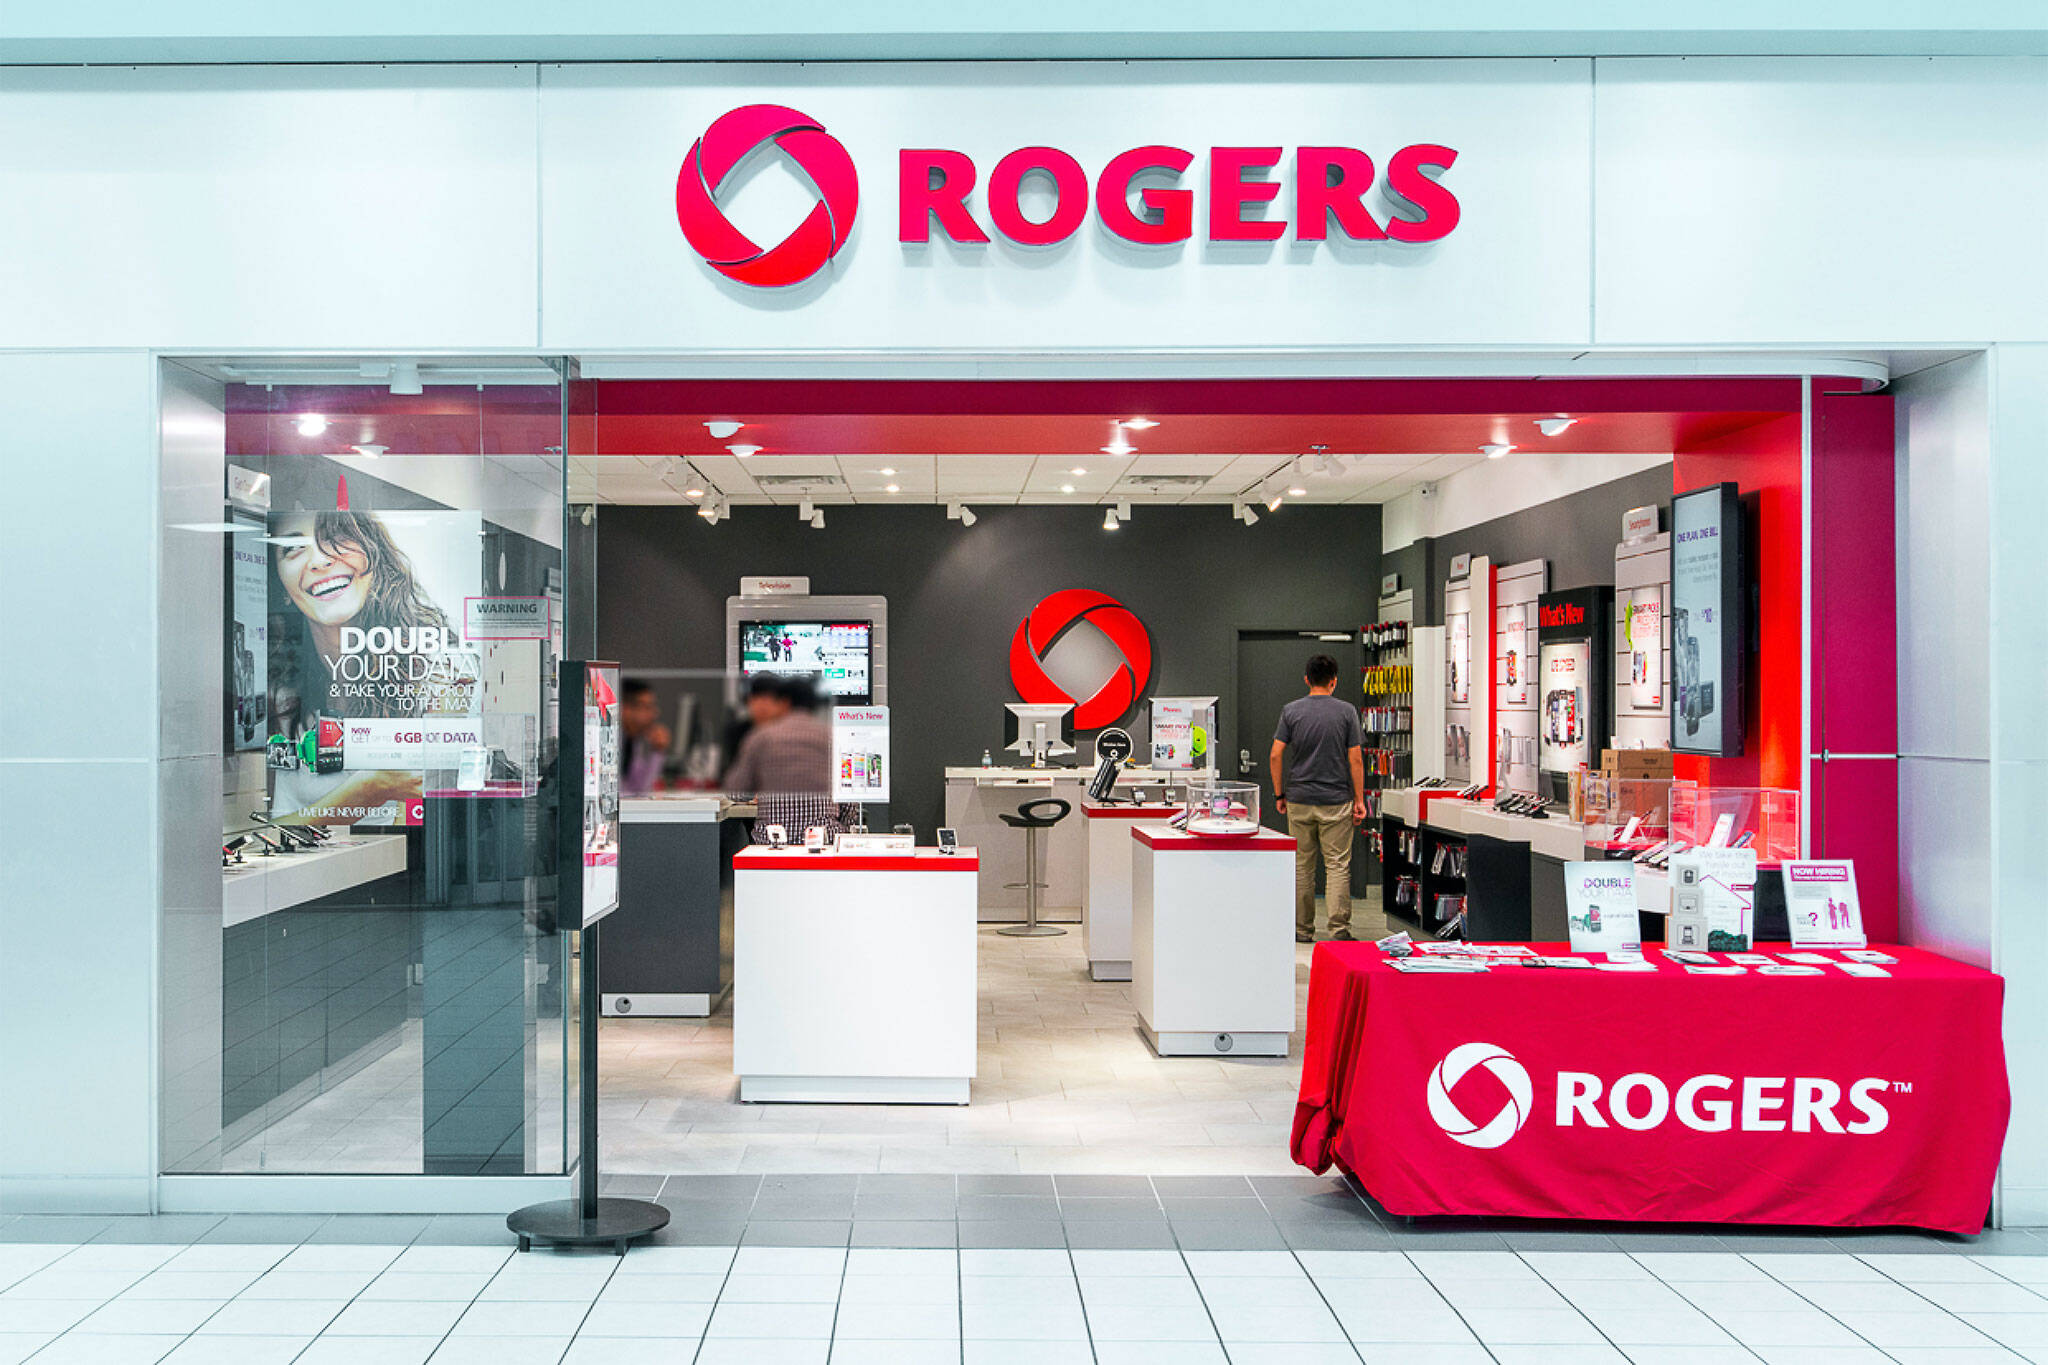 Rogers unlimited data plan